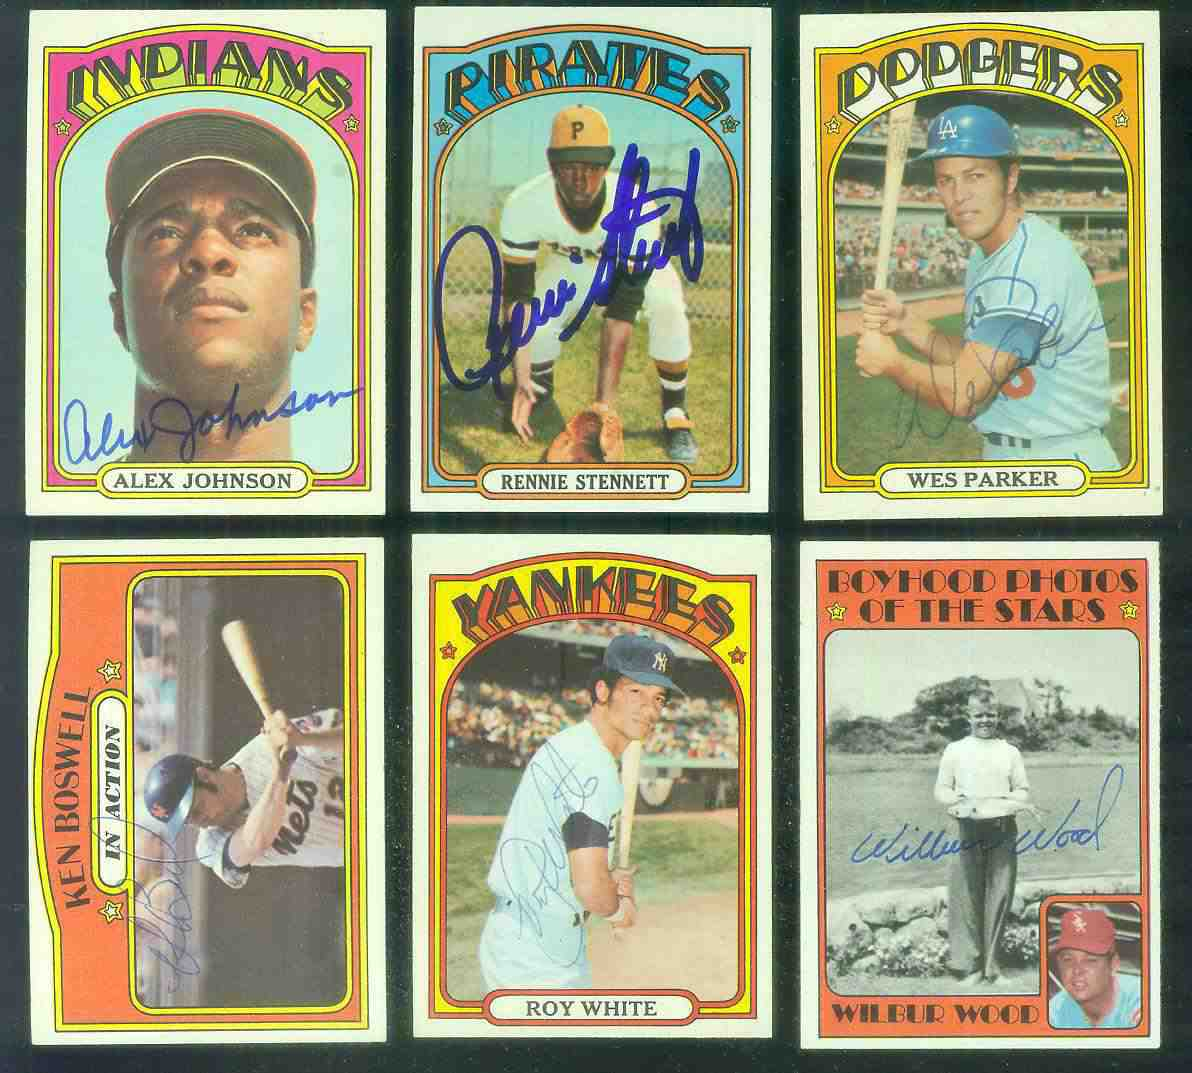 AUTOGRAPHED: 1972 Topps #342 Wilbur Wood 'Kid-Pix' PSA/DNA LOA (White Sox) Baseball cards value